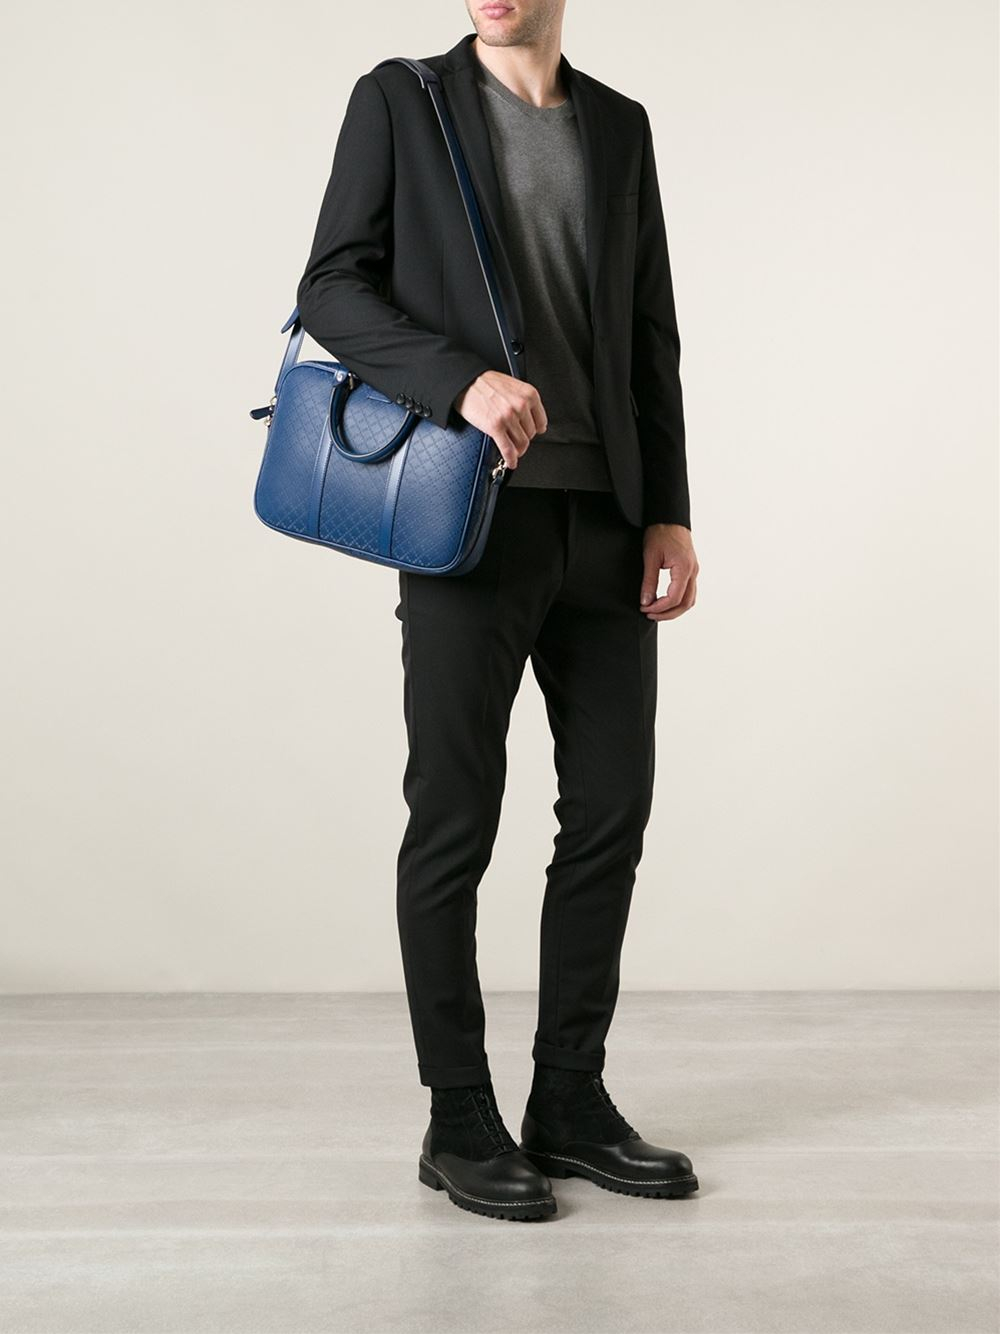 Lyst - Gucci Diamond Laptop Bag in Blue for Men